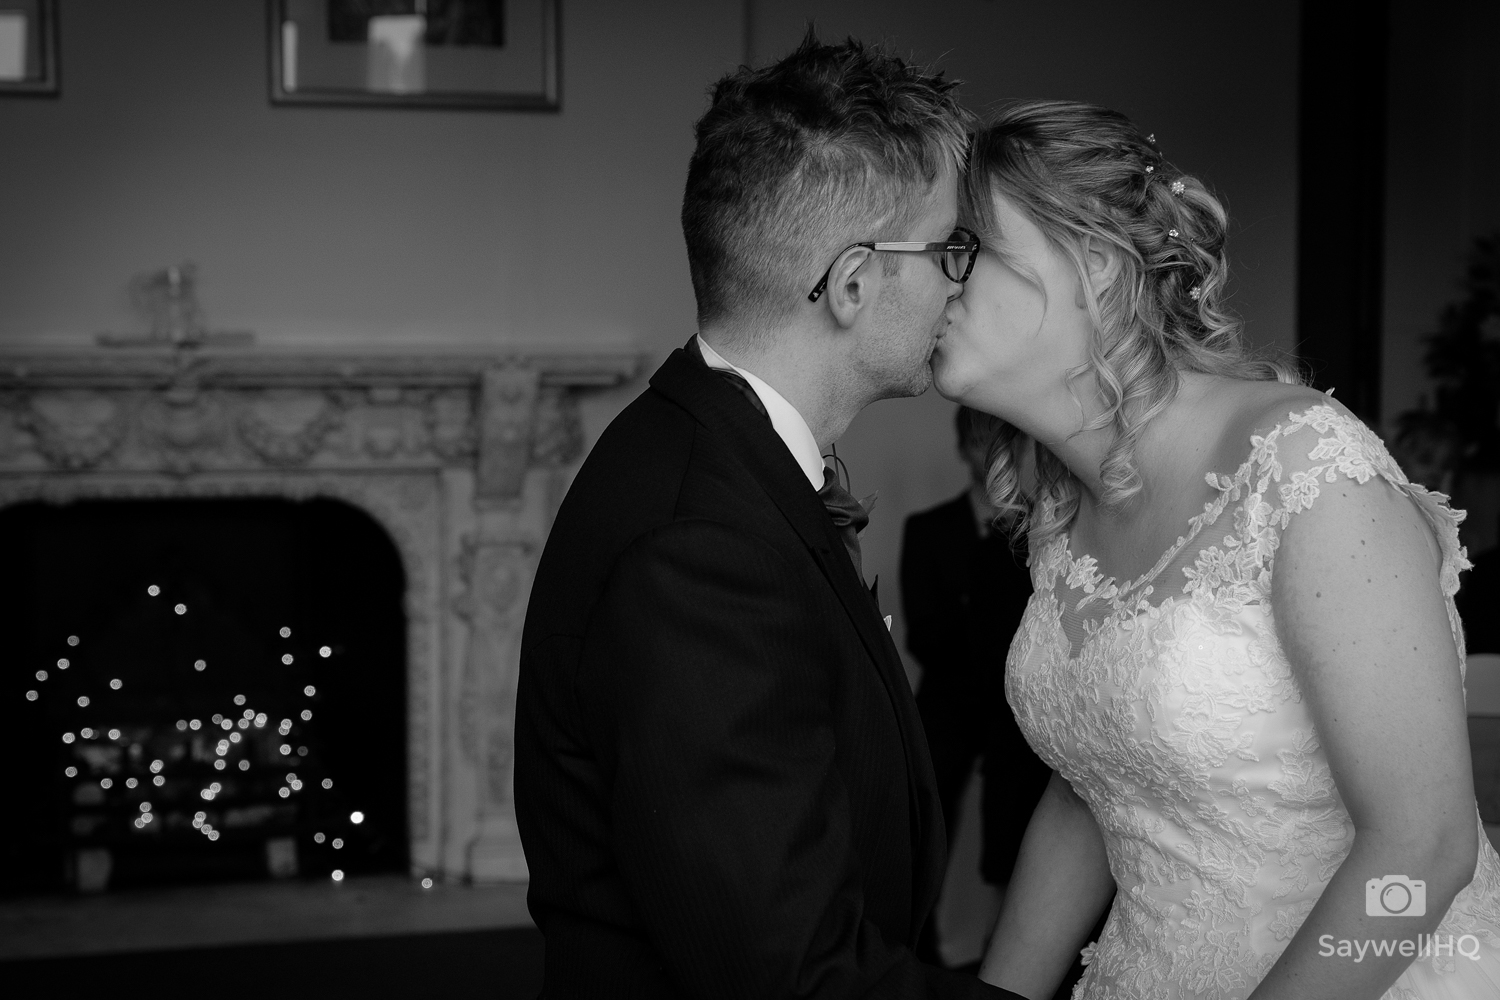 Wedding photography Beaumanor Hall - bride and groom first kiss during the wedding ceremony at Beaumanor Hall